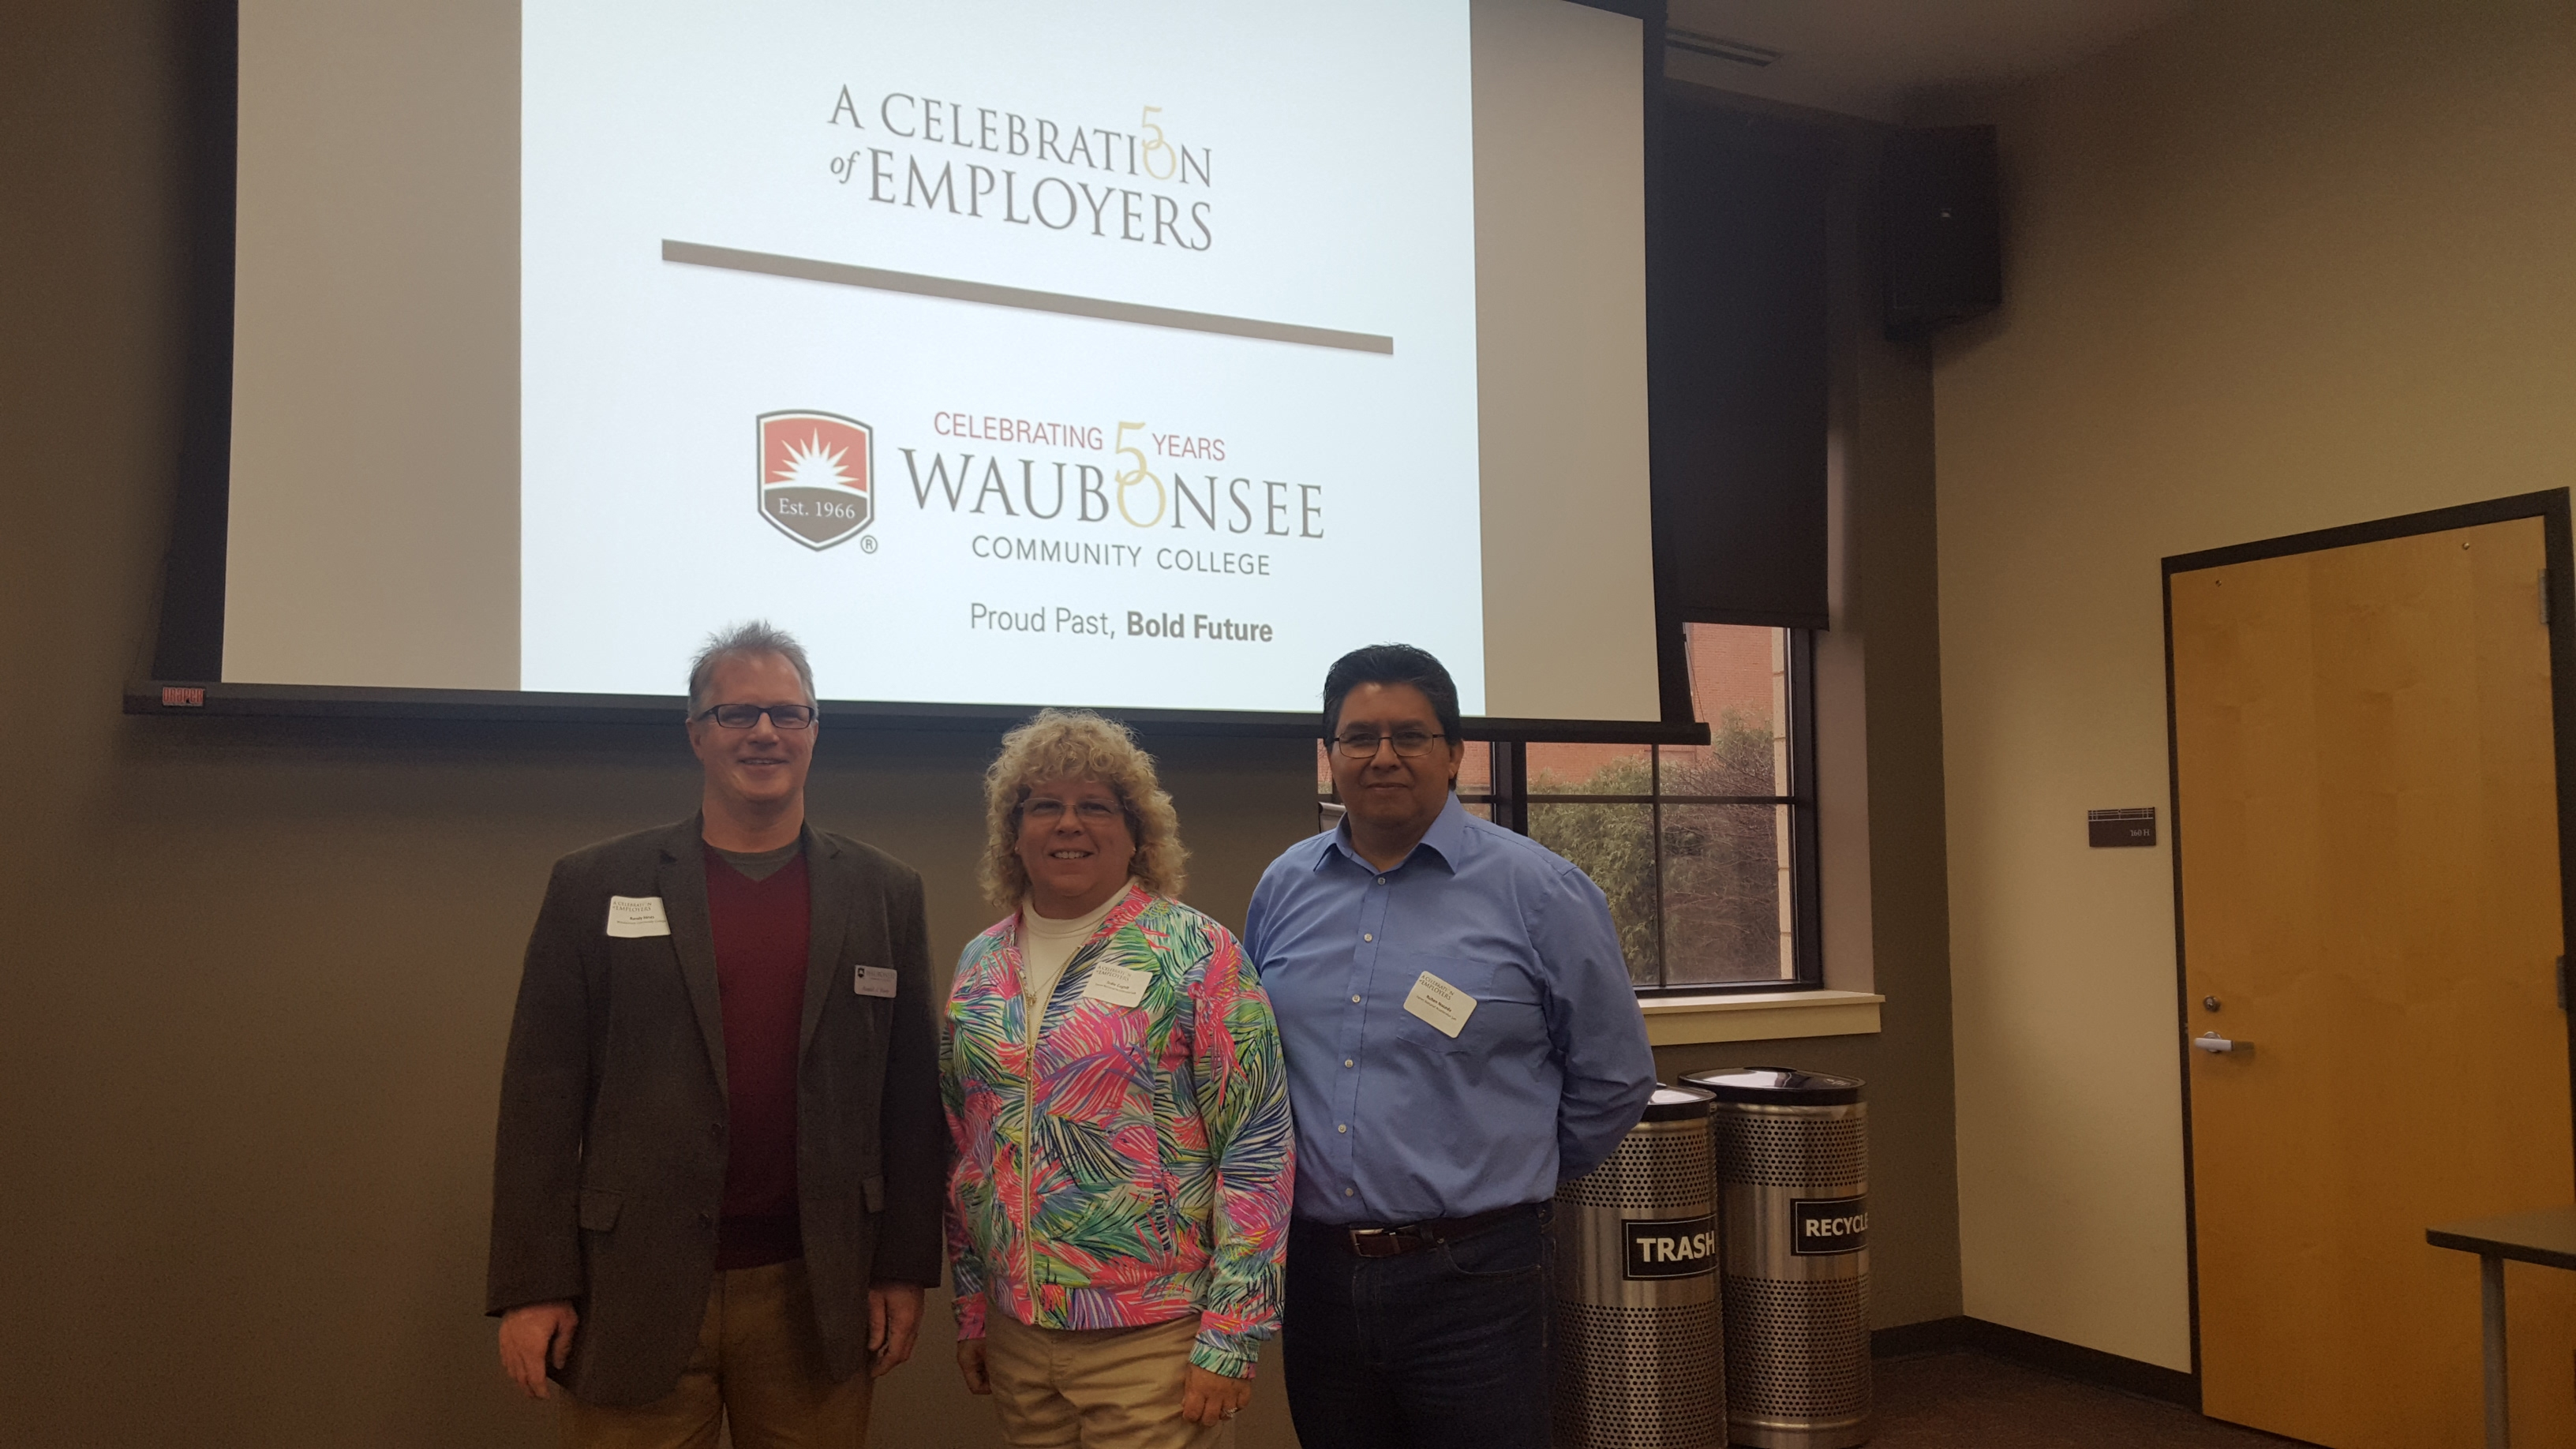 Fermilab And Waubonsee Community College Internship Going Strong  Xjb